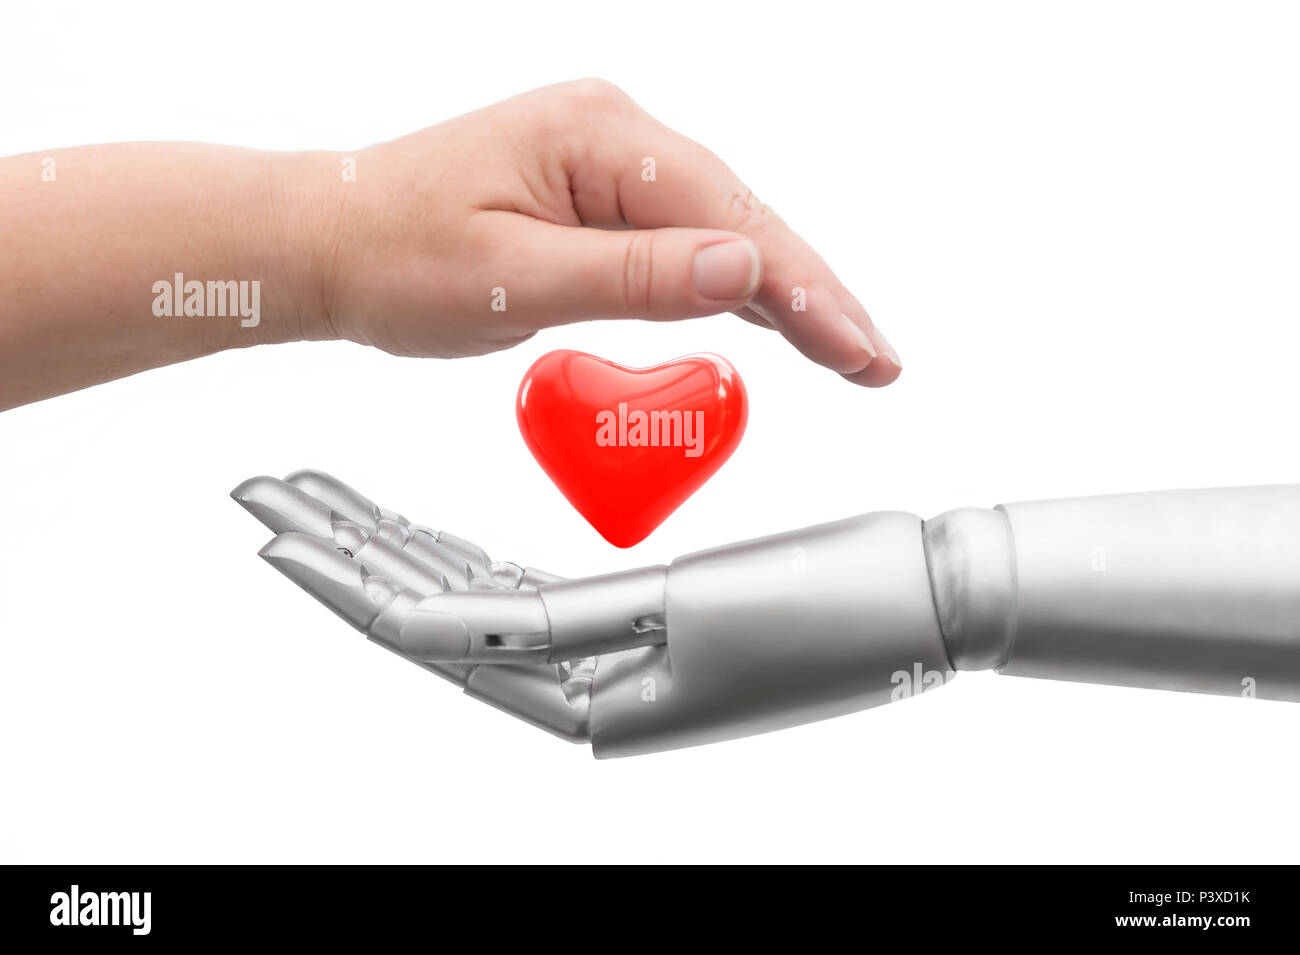 Conceptual photo of how life is protected. A robot hand and a human hand protectively surround a heart. Isolated in front of white background. Stock Photo